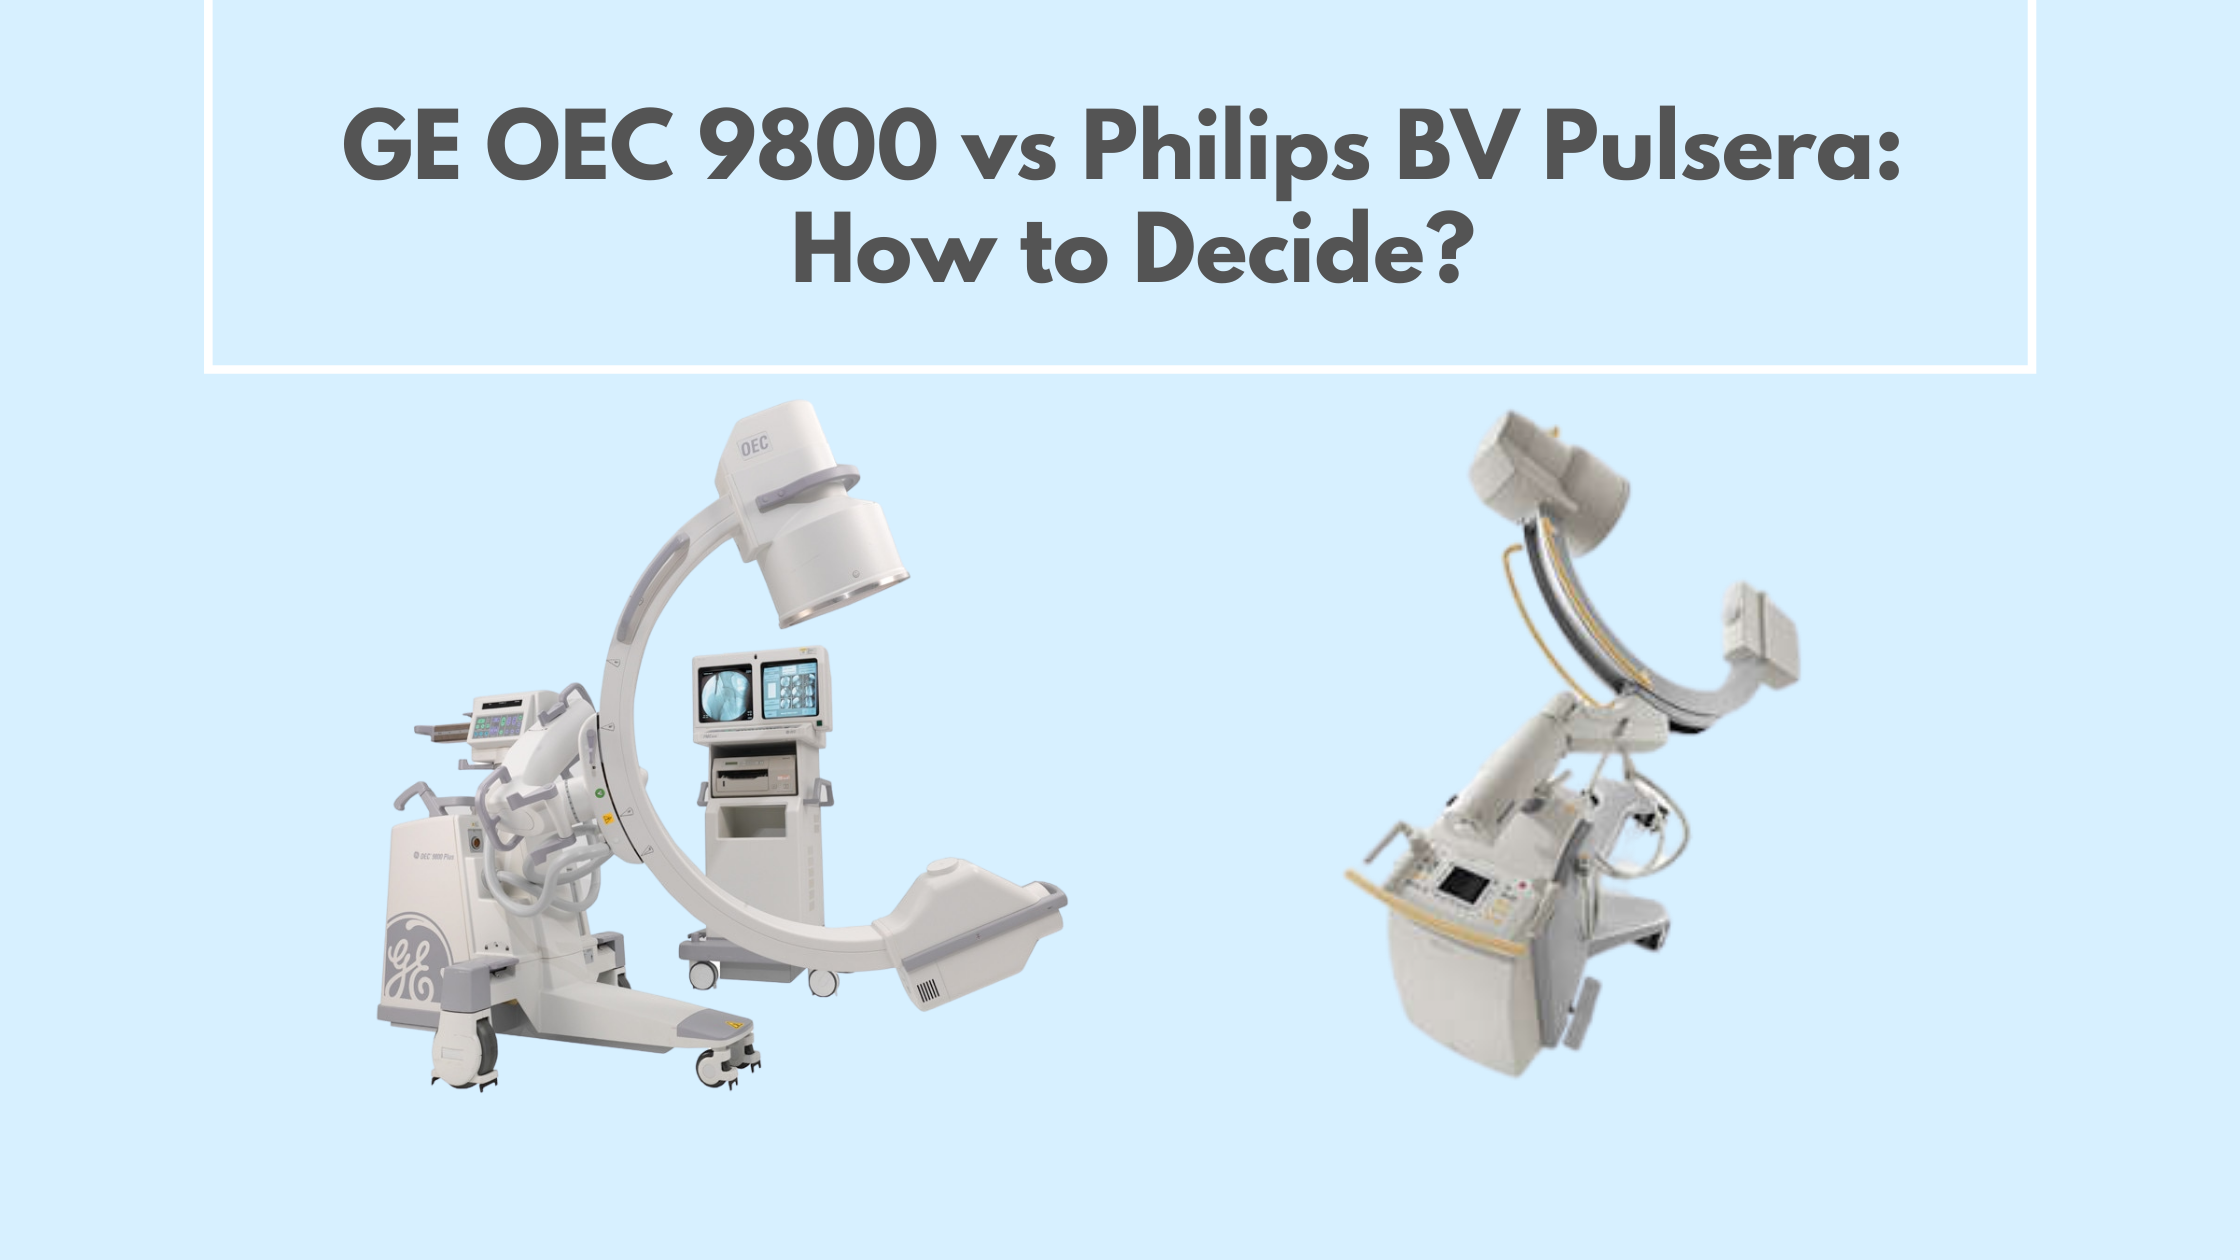 GE OEC 9800 vs Philips BV Pulsera